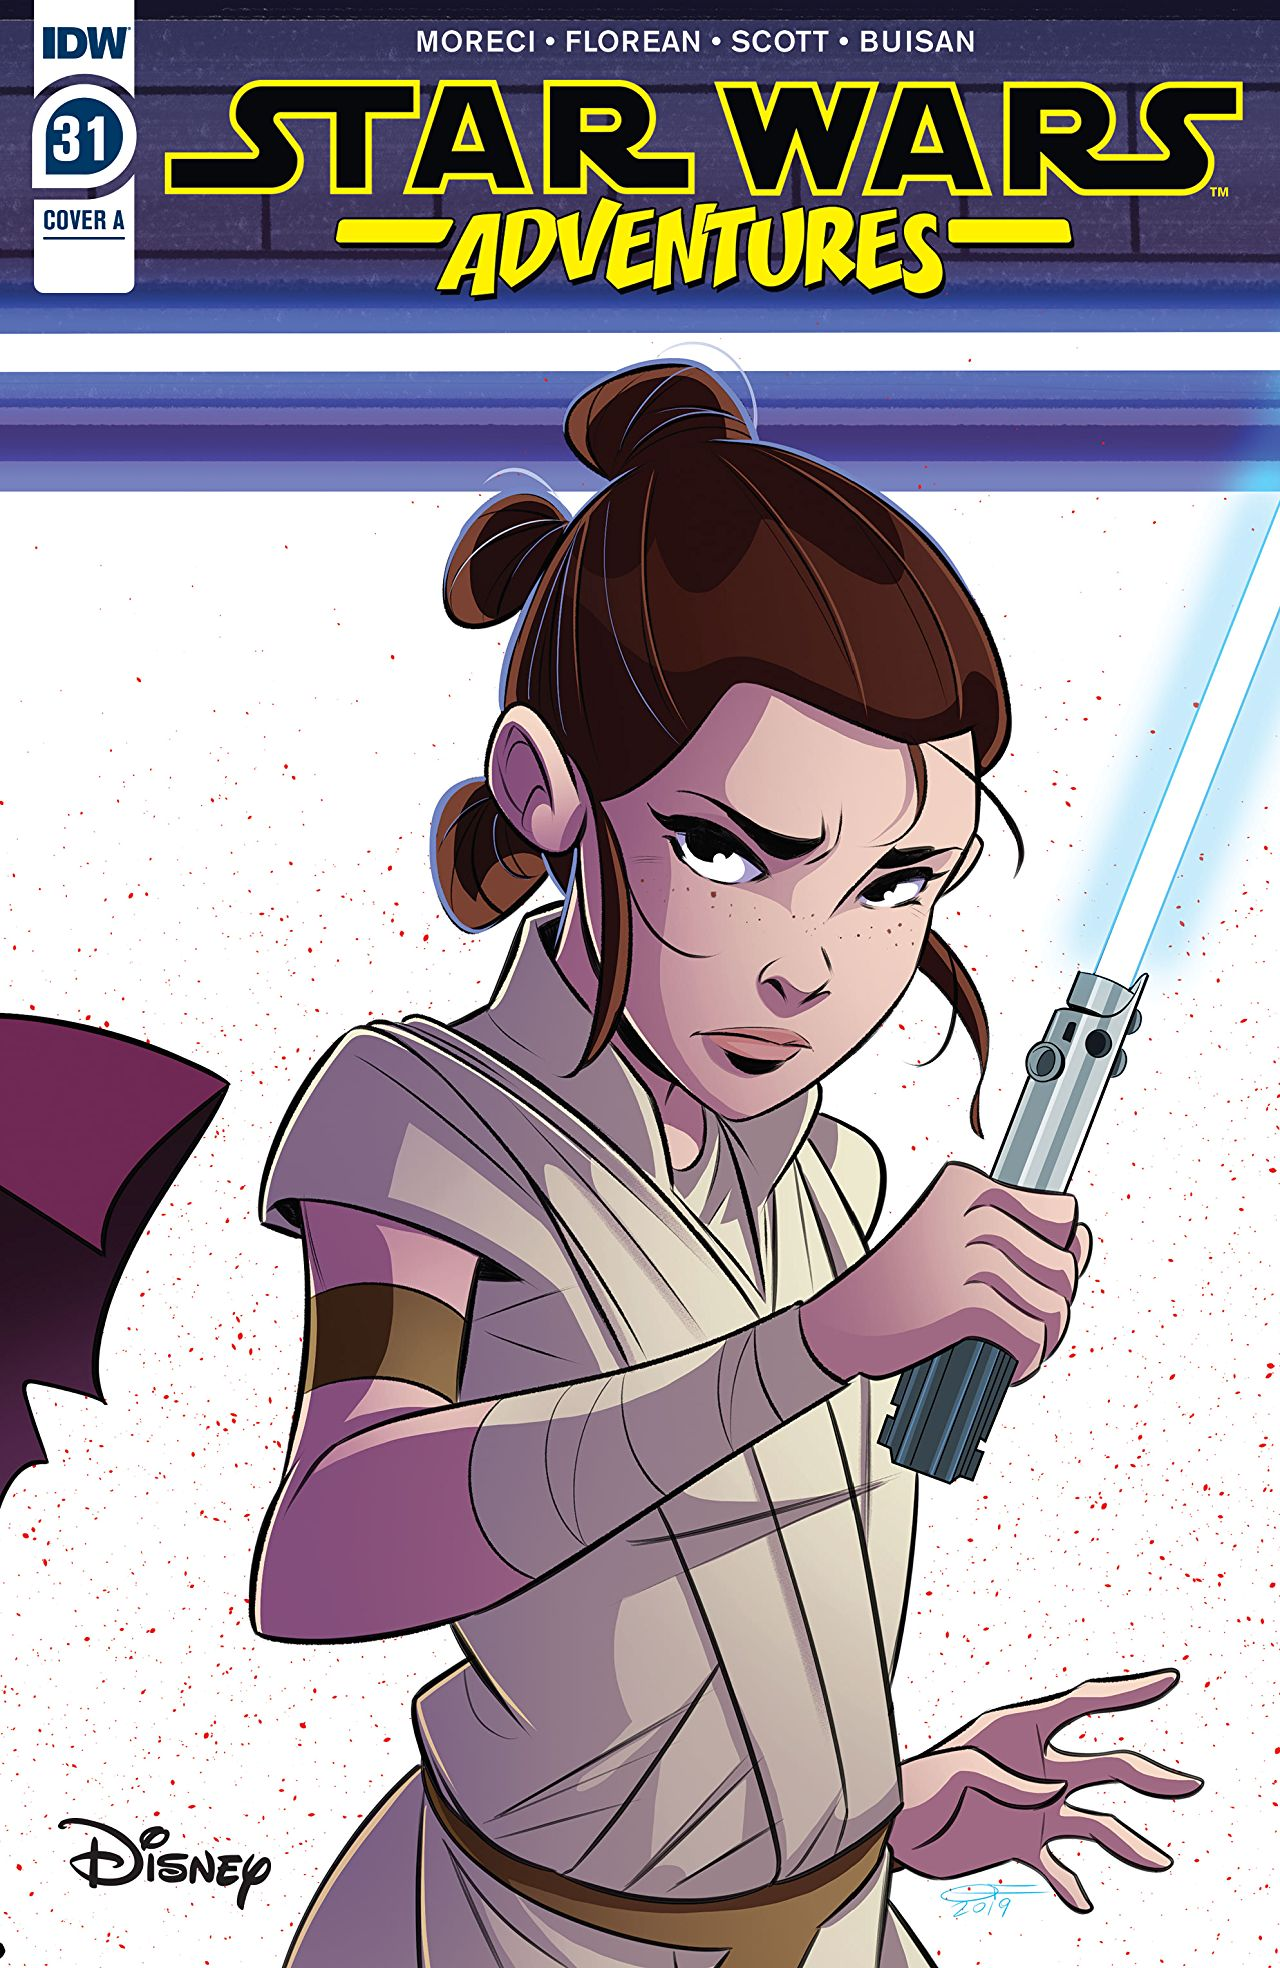 Star Wars Adventures  #31 Cover A